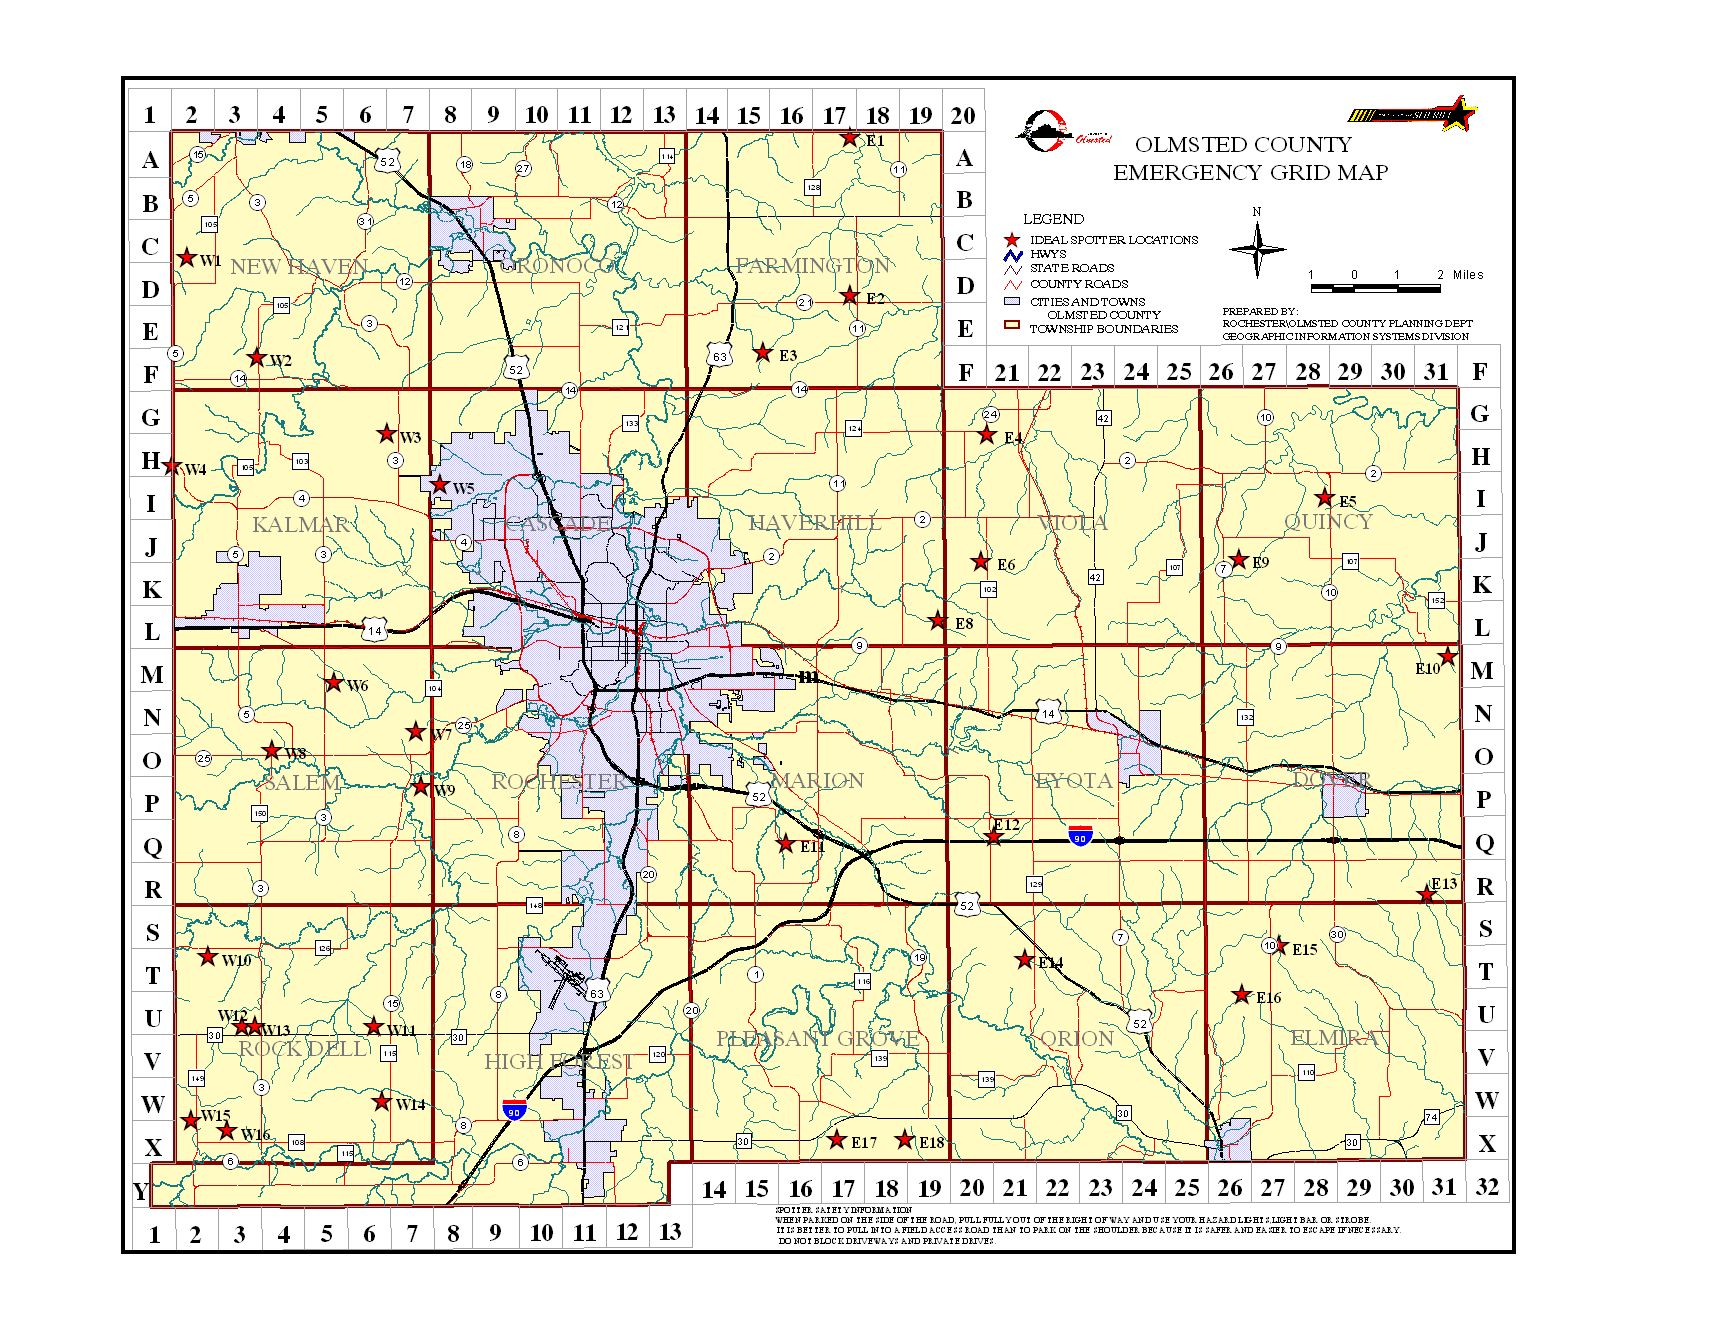 Olmsted County Ares Frequency List And Grid Maps